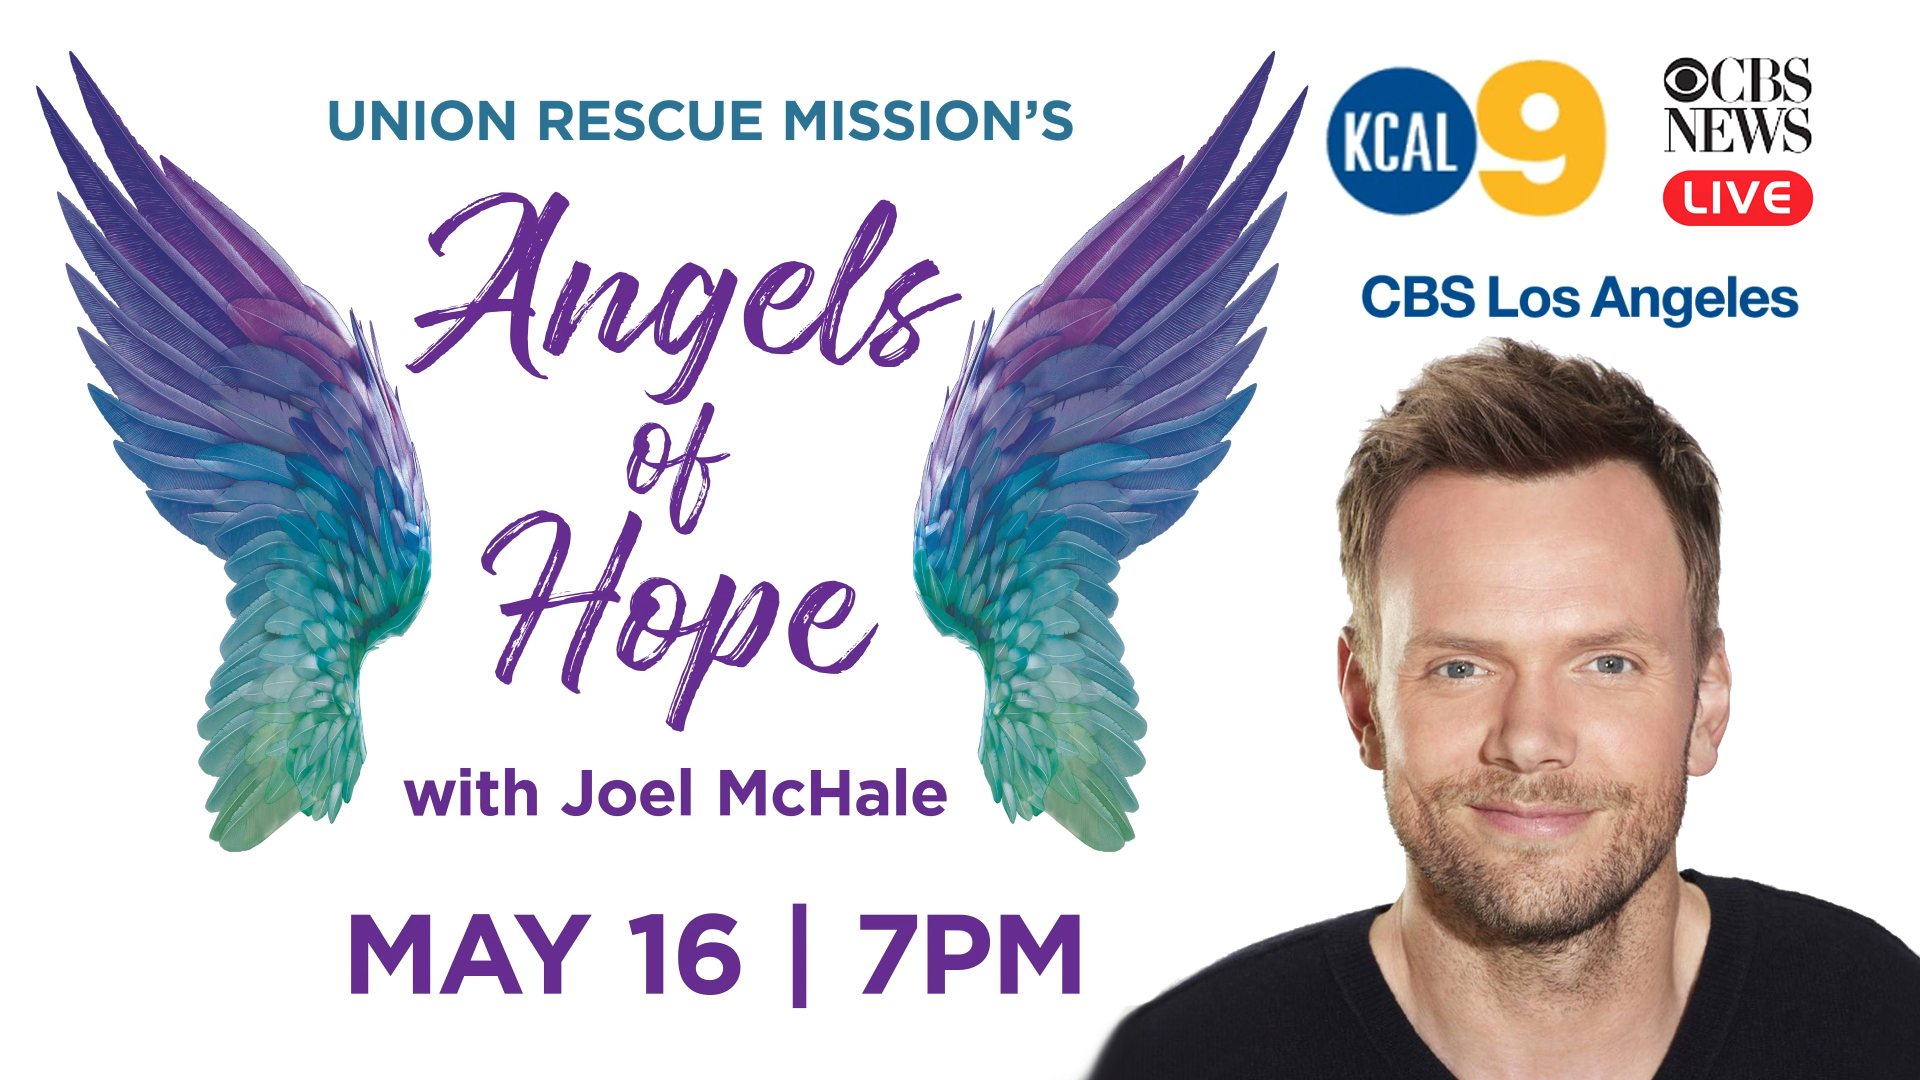 Angels of Hope TV Event KCAL 9 May 16 @ 7PM -- COPY